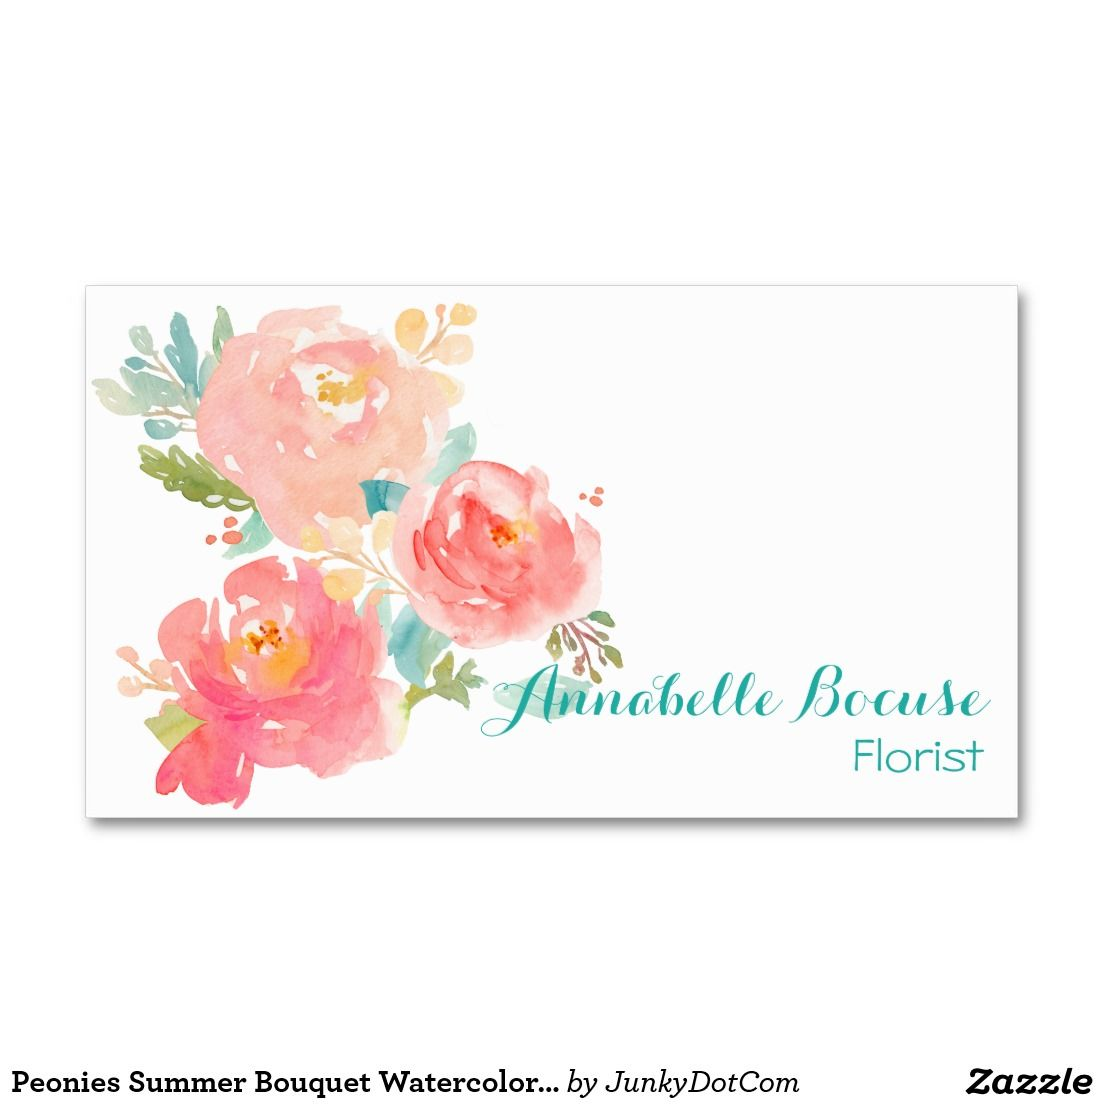 Peonies Summer Bouquet Watercolor Pastel Double-Sided Standard Business Card - July 27 - 2x